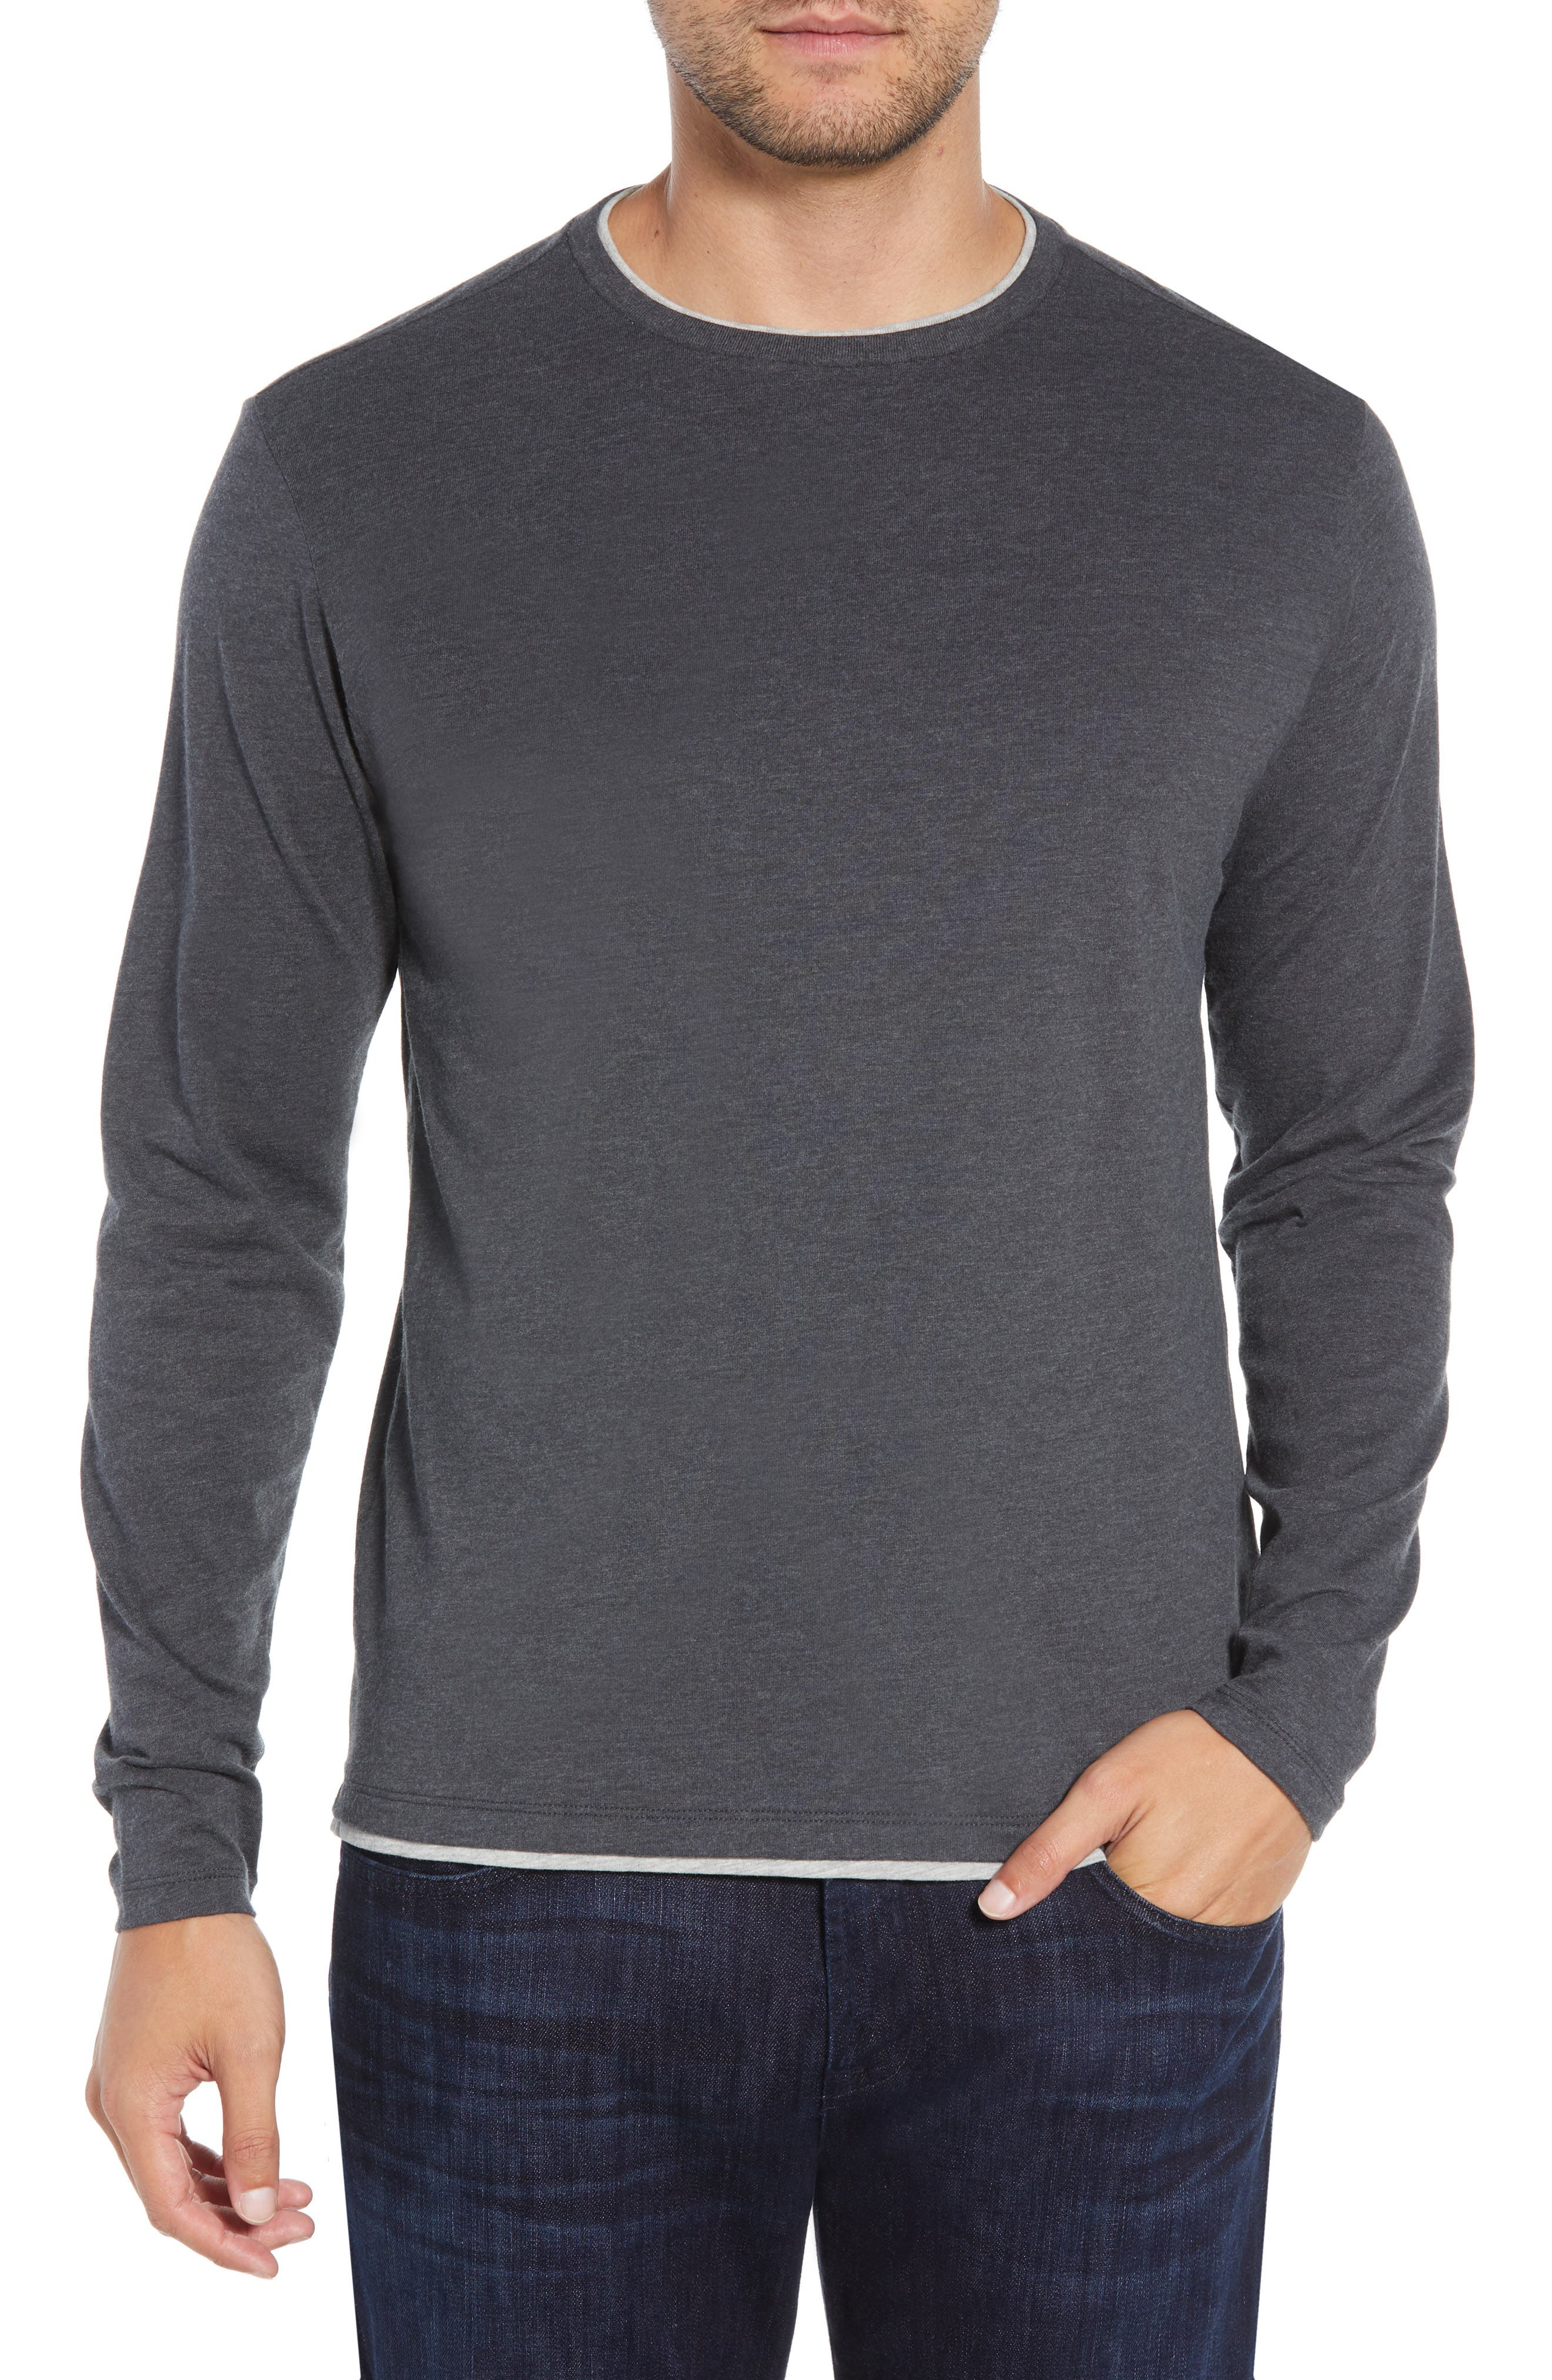 Halifax Long Sleeve Crewneck T-Shirt,                             Main thumbnail 1, color,                             TITANIUM